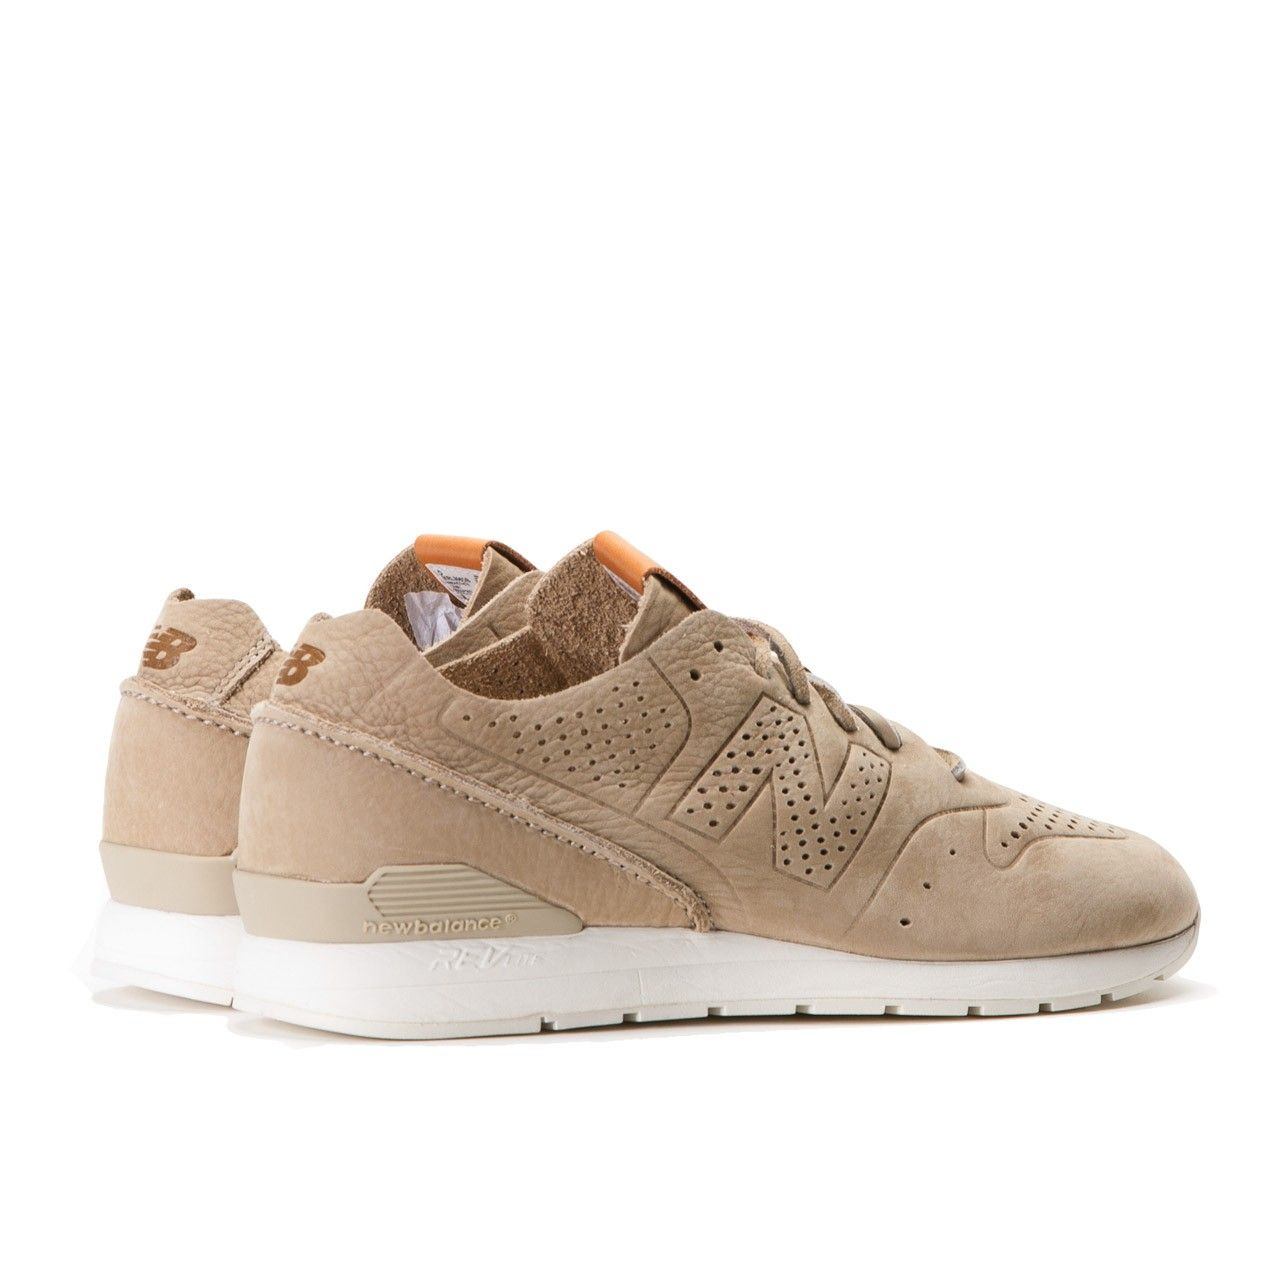 new balance 996 deconstructed reengineered beige shoe mrl996db